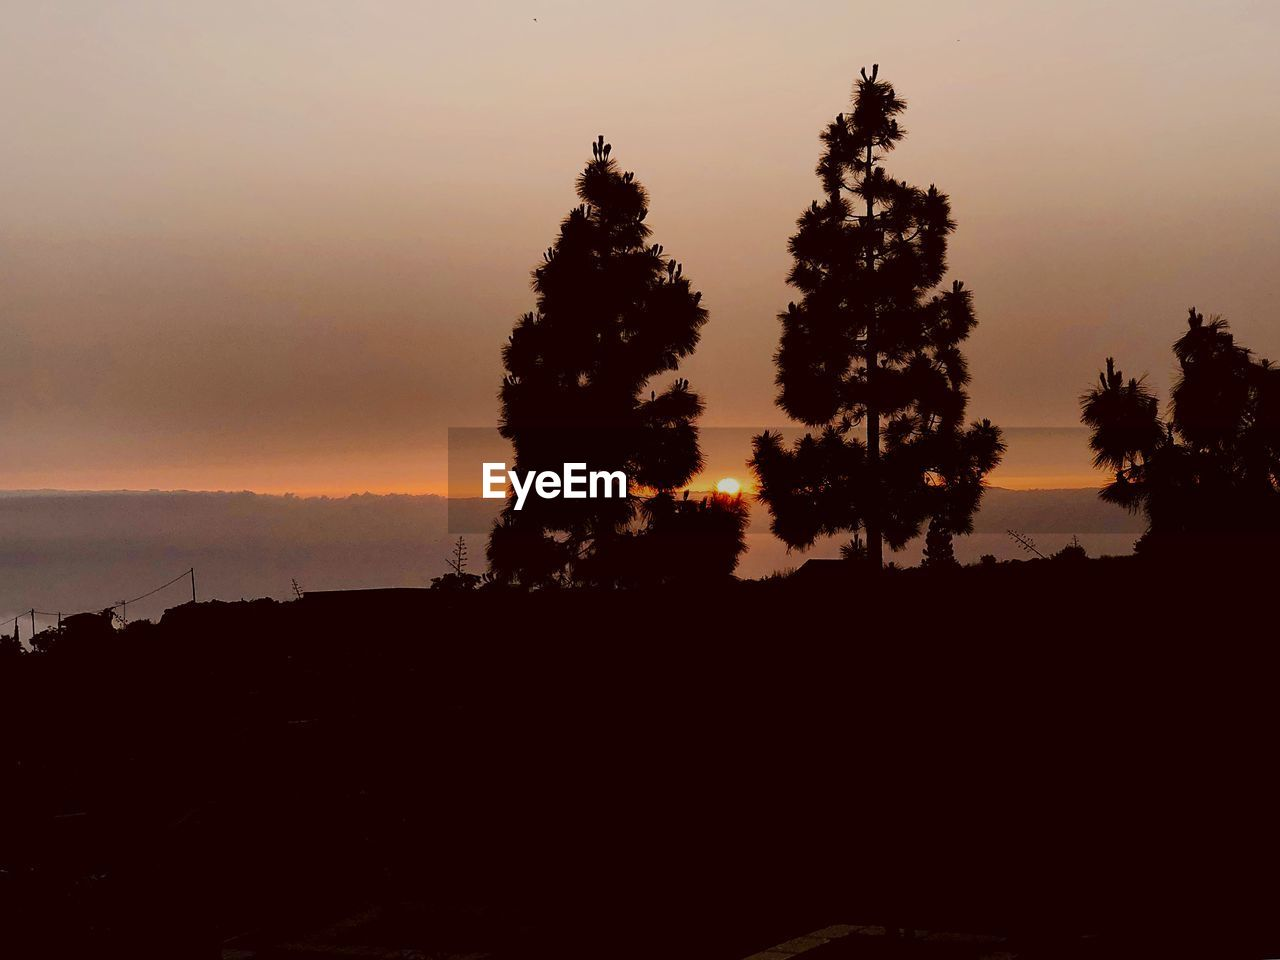 sunset, tree, silhouette, sky, plant, beauty in nature, scenics - nature, nature, tranquility, tranquil scene, no people, orange color, non-urban scene, growth, idyllic, landscape, field, copy space, land, outdoors